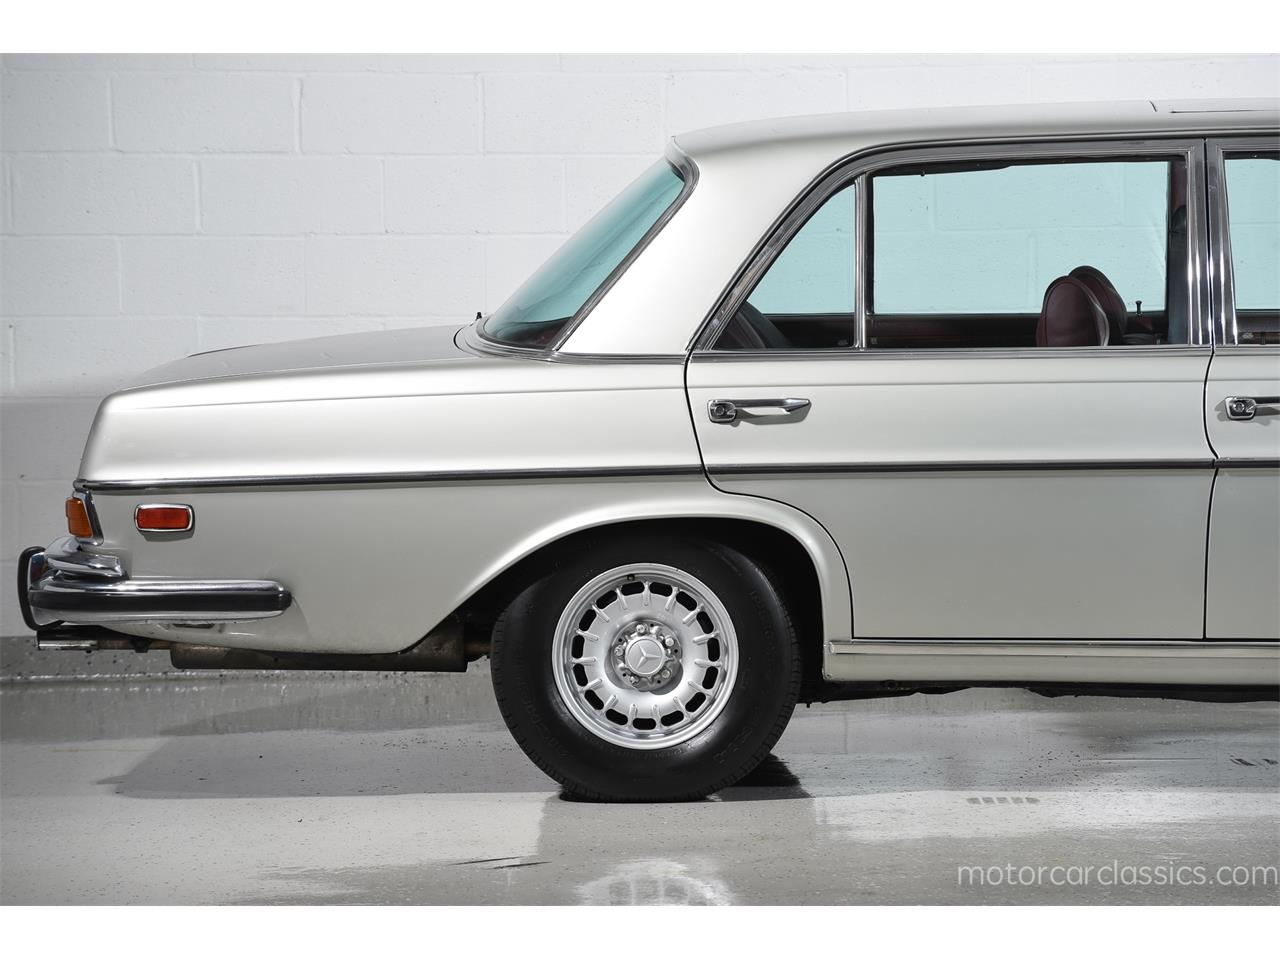 1971 Mercedes-Benz 300SEL for sale in Farmingdale, NY – photo 17